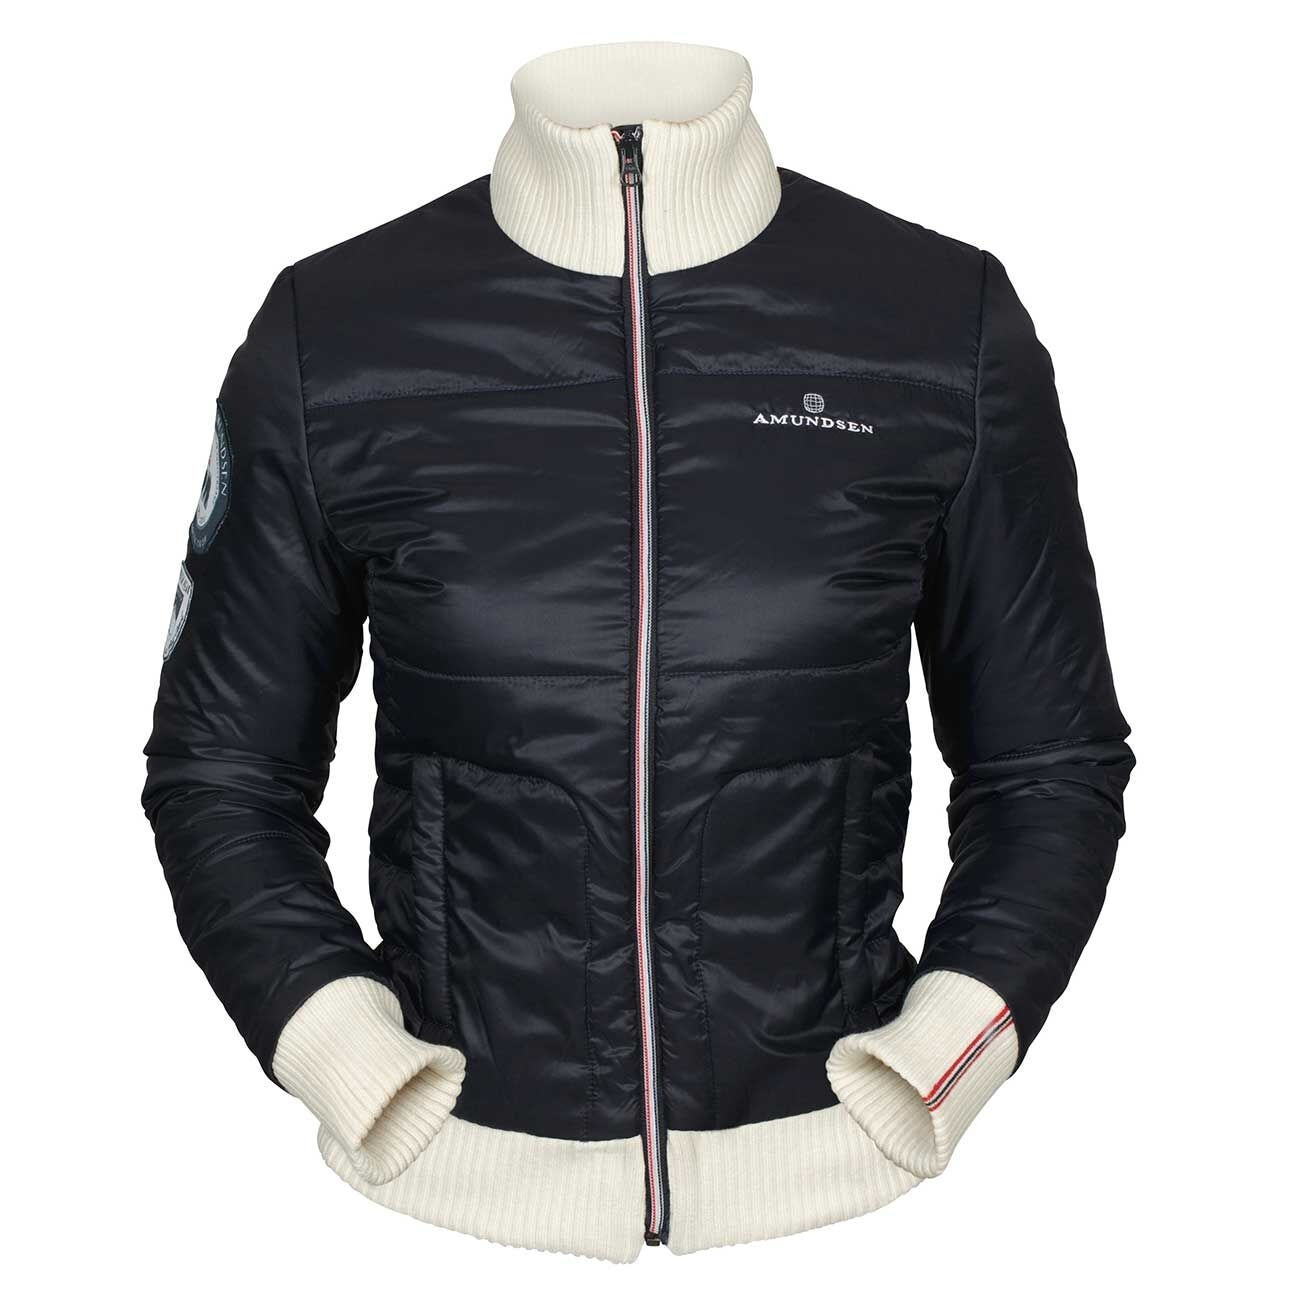 Amundsen Sports Breguet Jacket W's